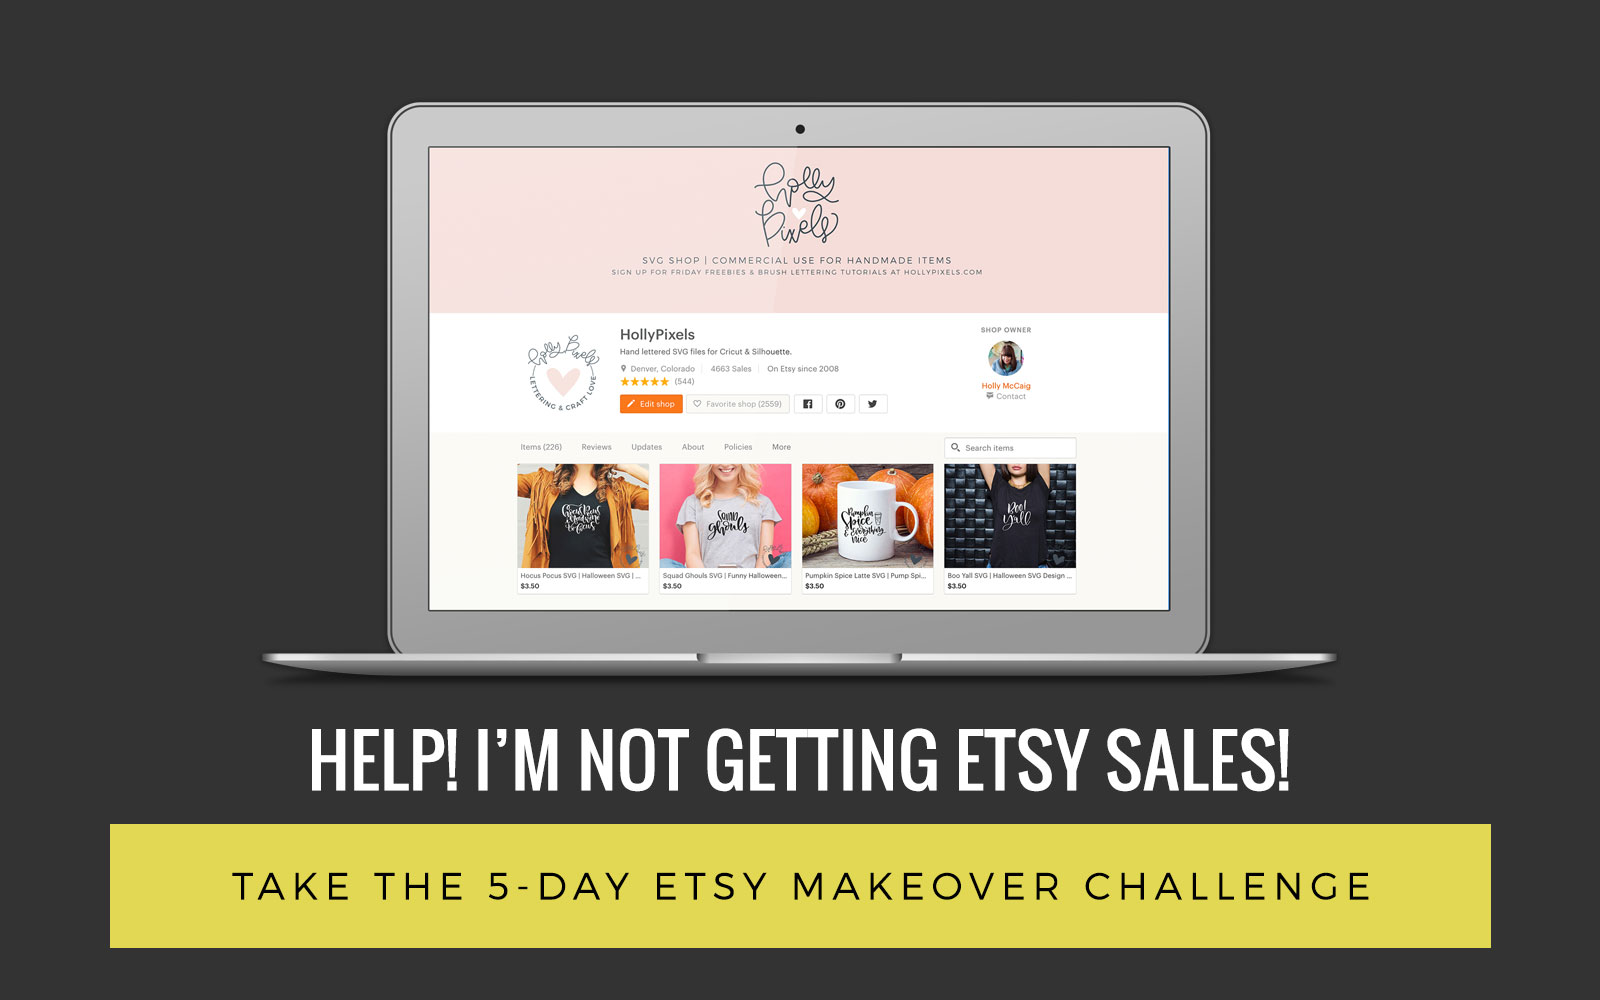 Struggling to get sales on Etsy? Improve your Etsy shop with my FREE Etsy Makeover Challenge. Get started today and skyrocket your traffic & sales. via @hollymccaig